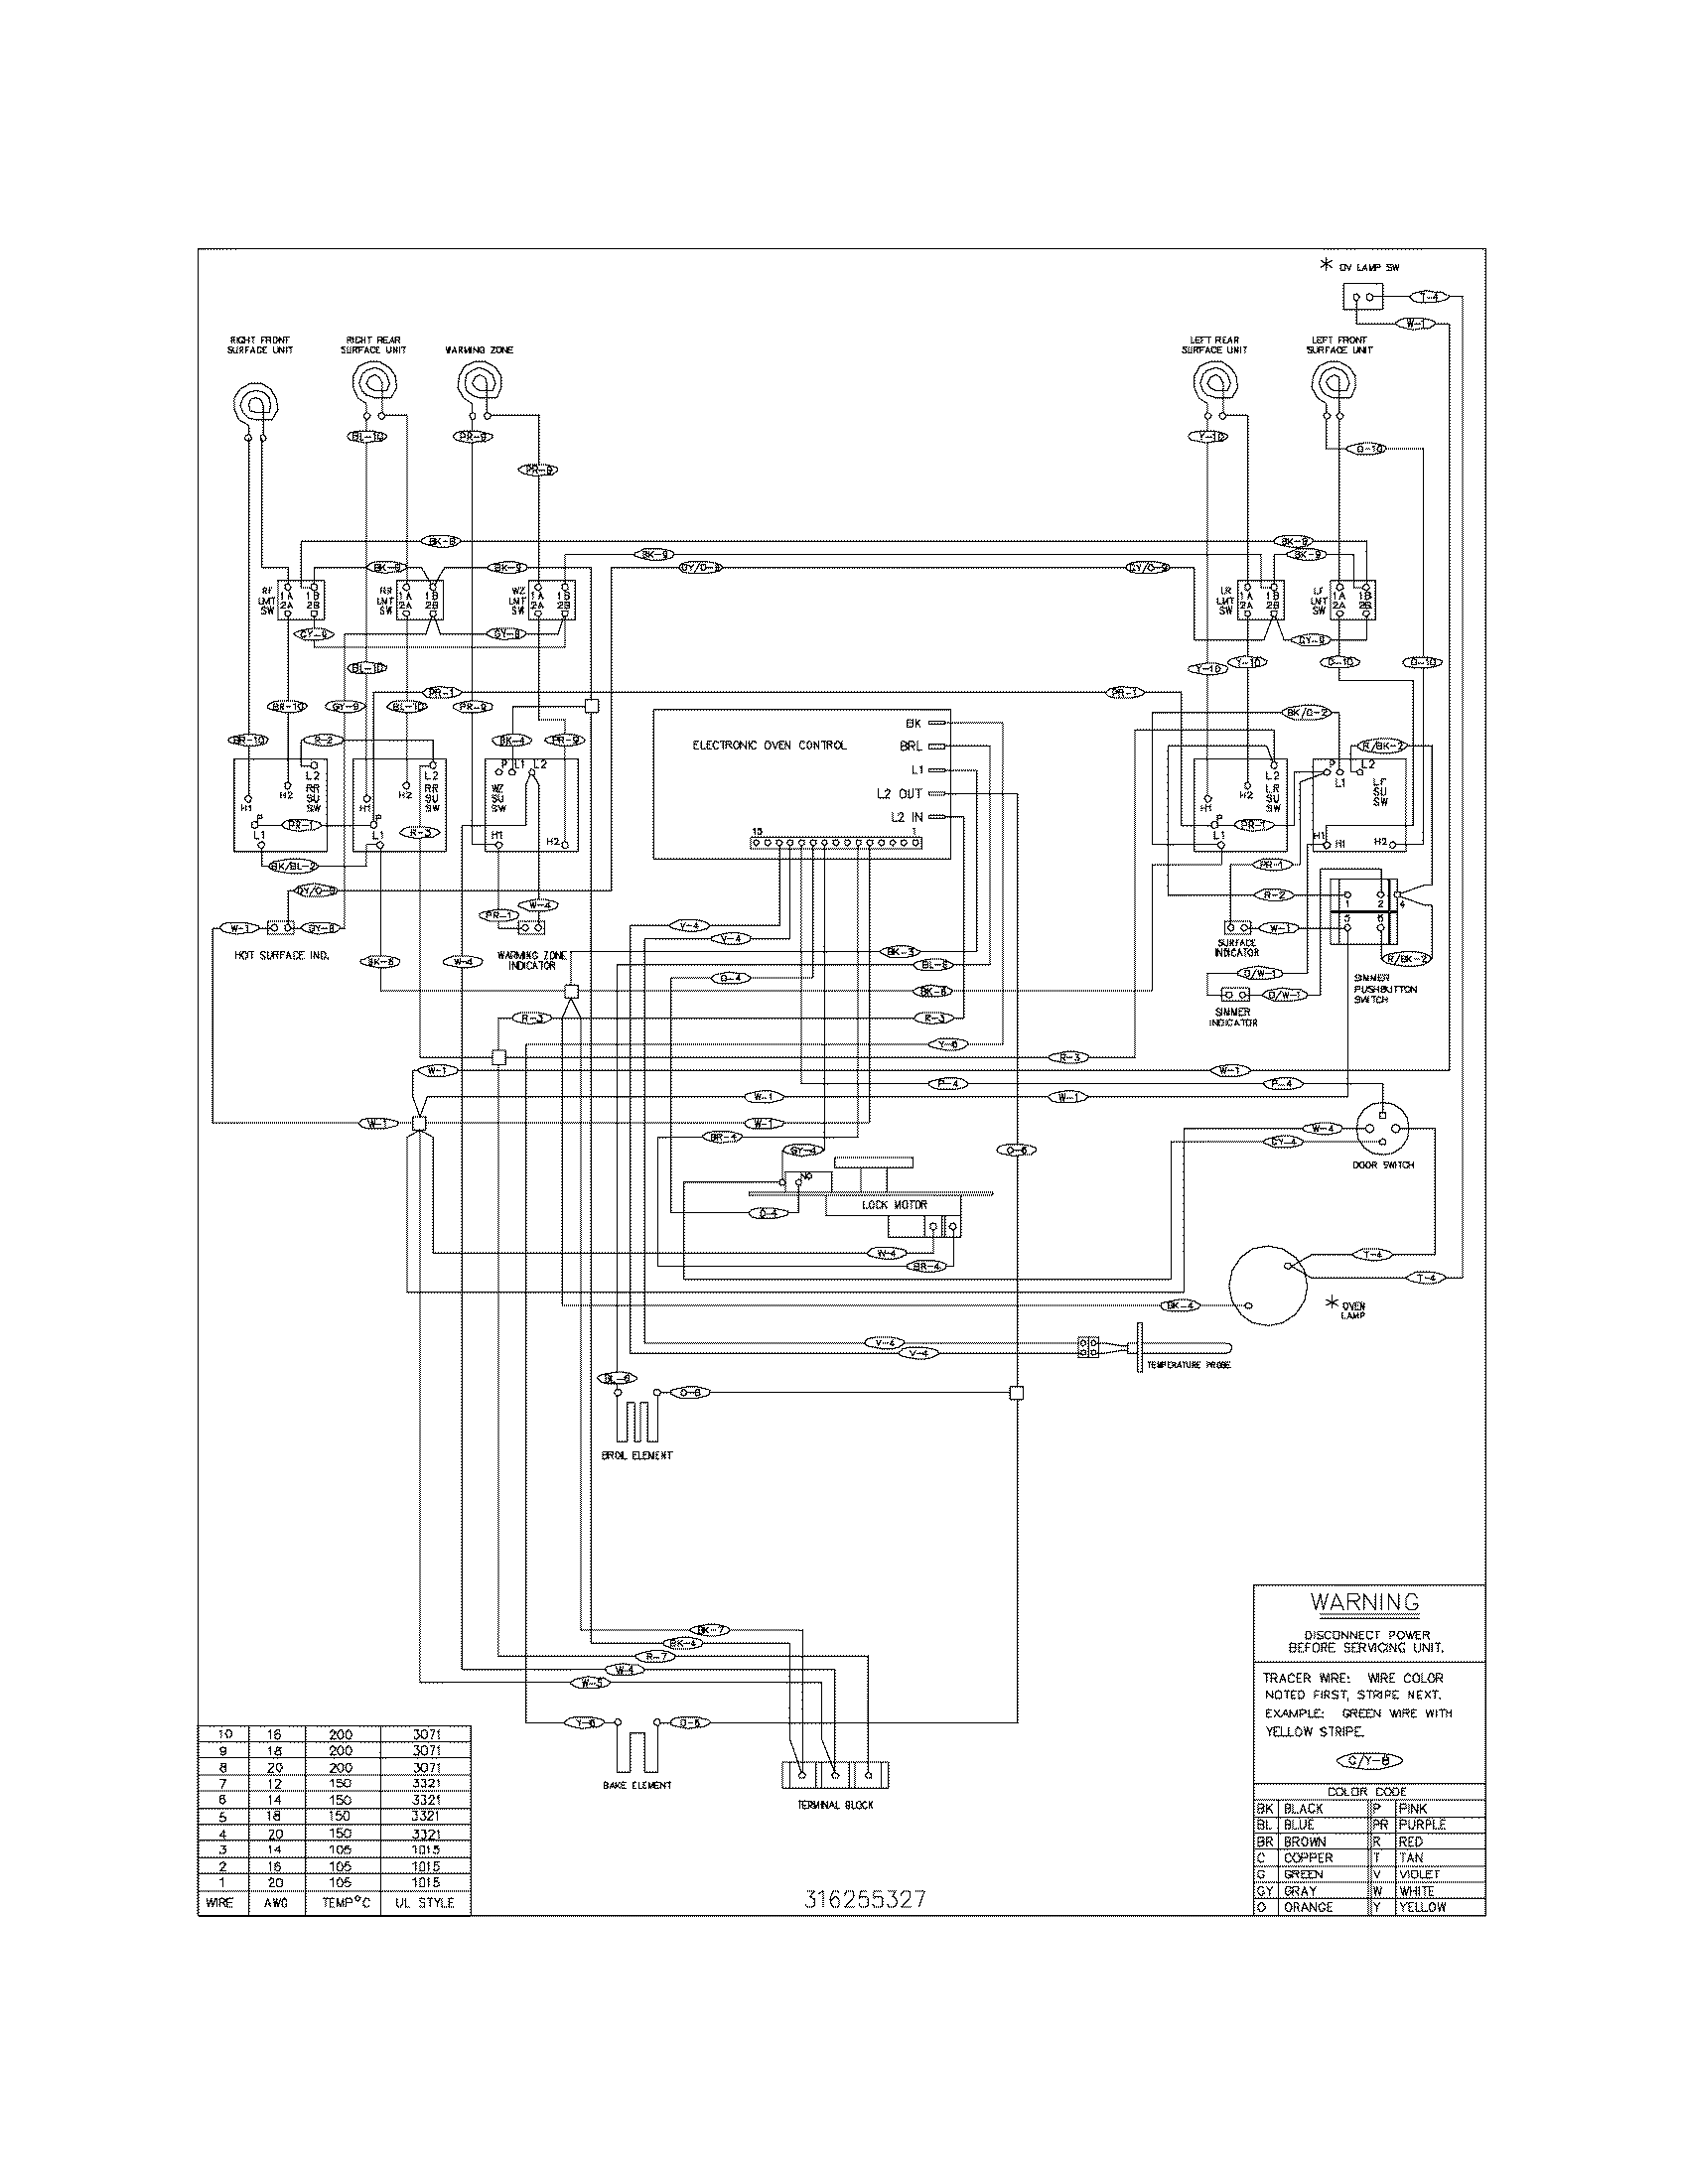 samsung refrigerator wiring diagram heart sounds magic chef defrost timer